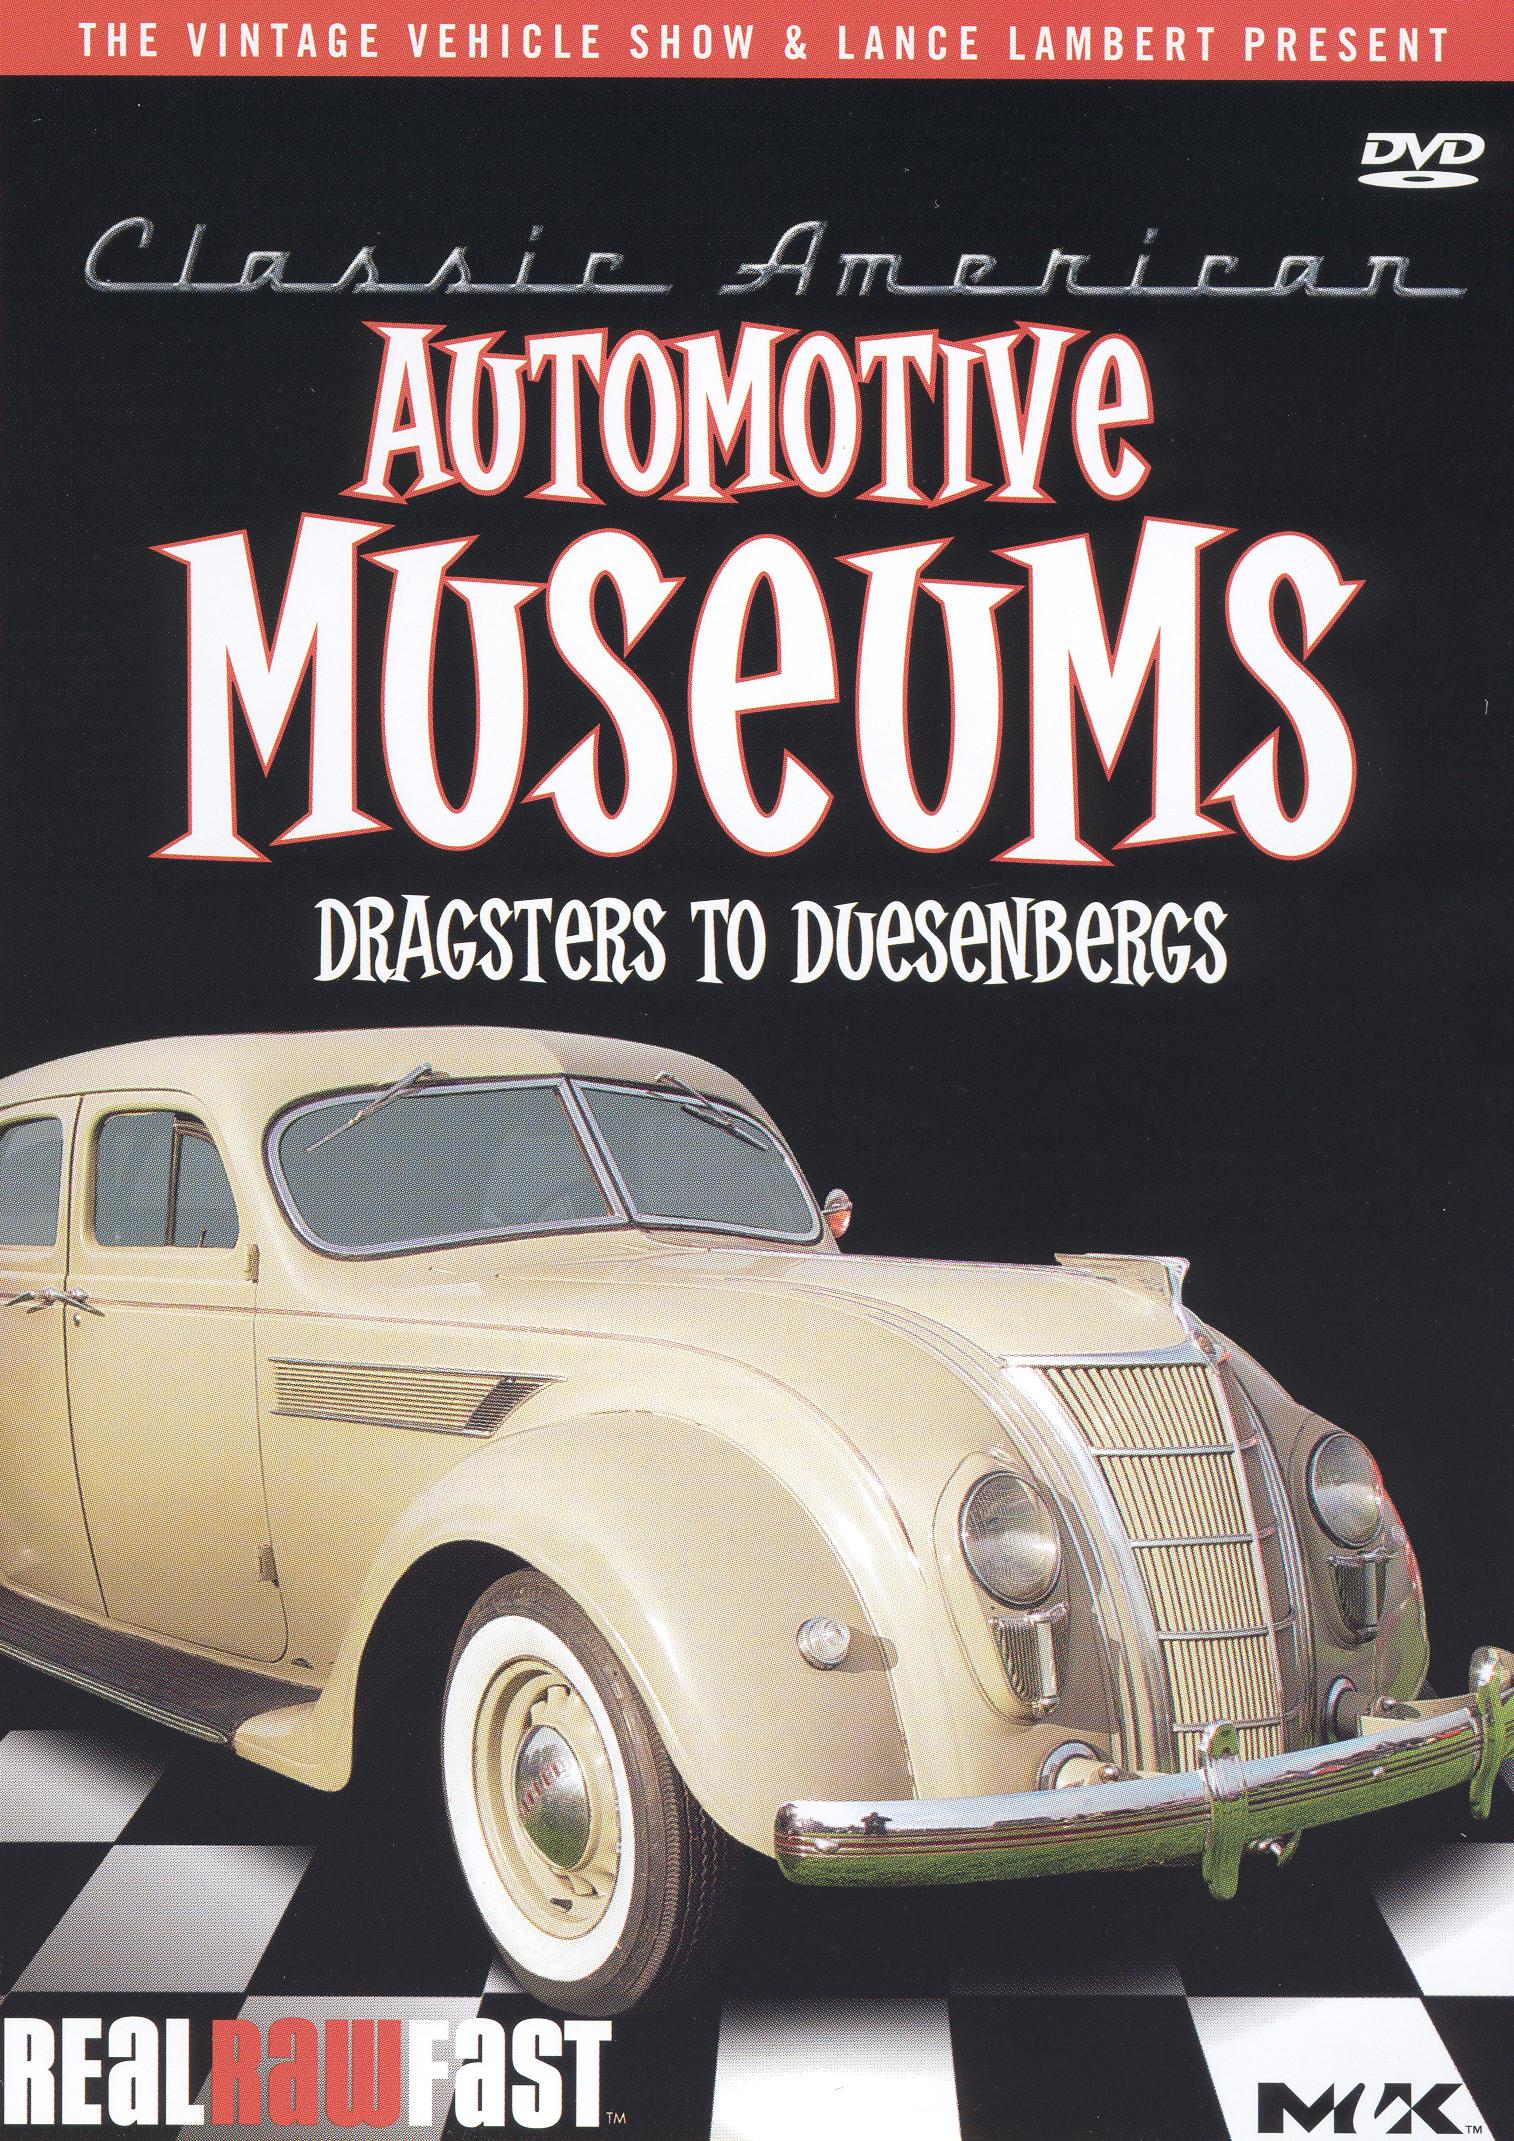 Classic American Automotive Museums: Dragsters to Duesenbergs